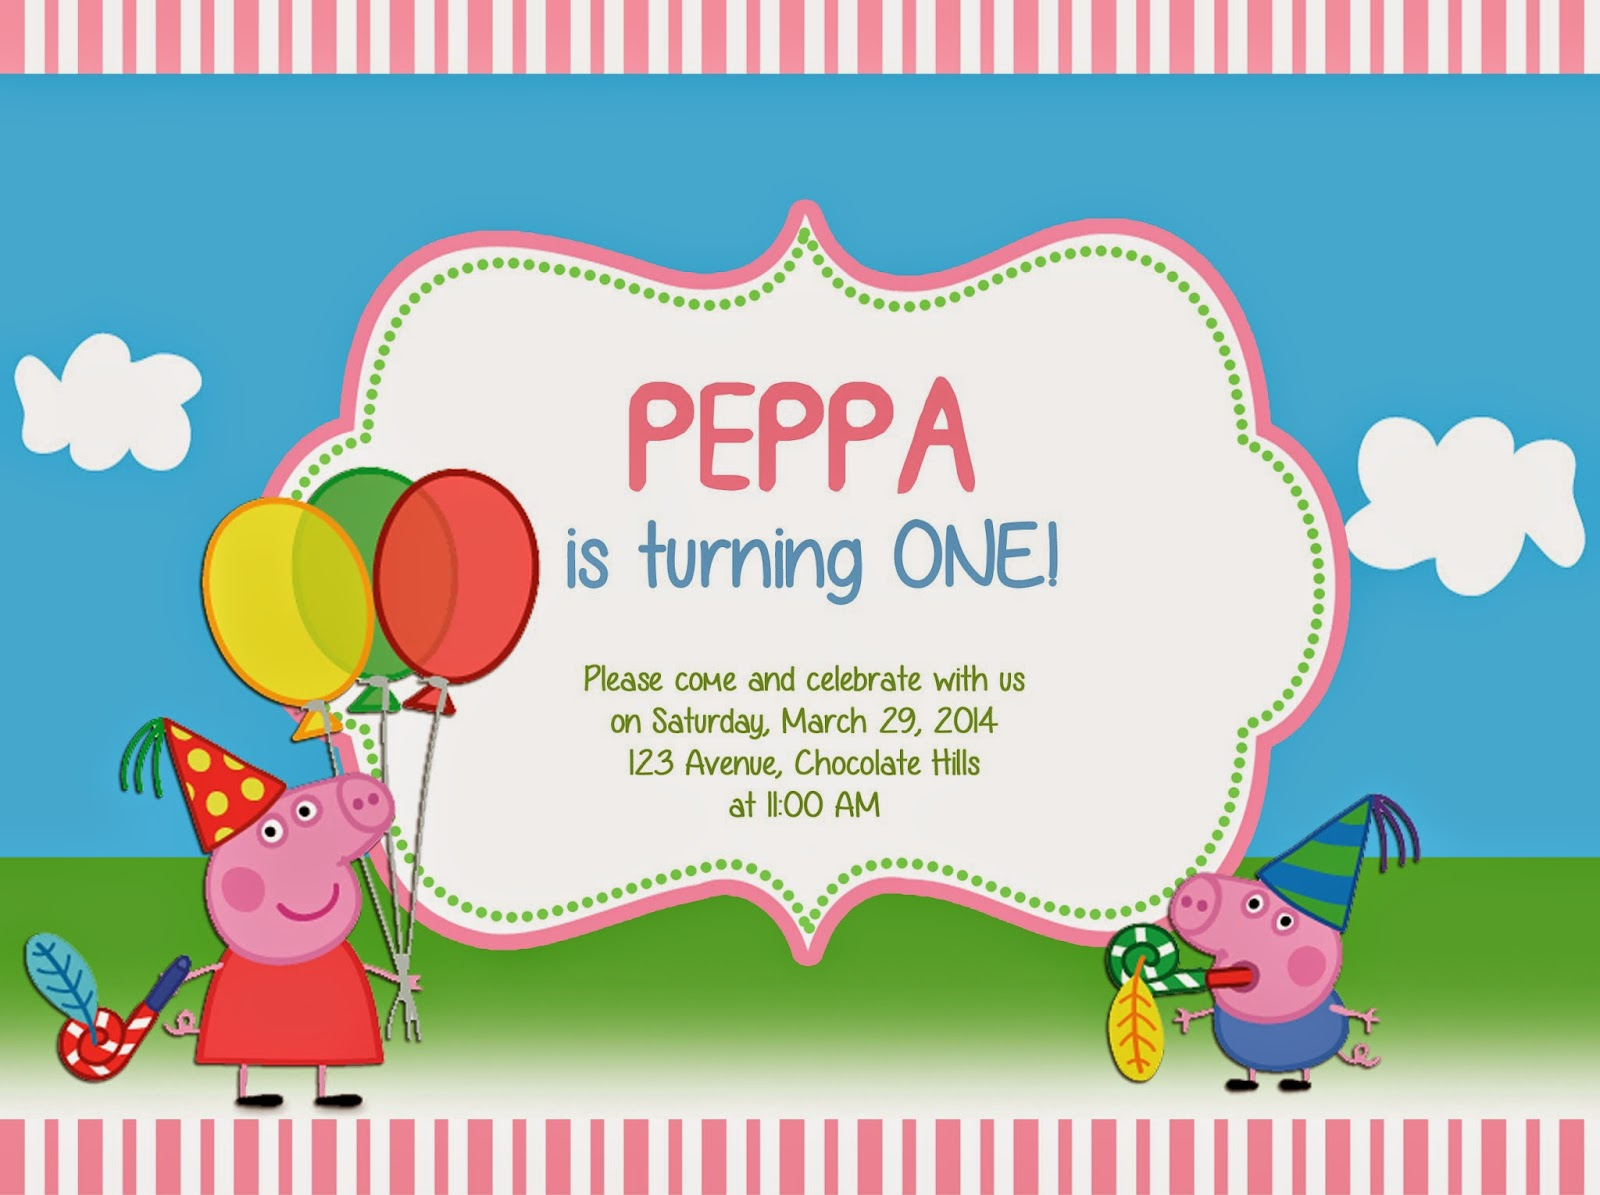 Peppa Pig Templates Cake Ideas and Designs Page 2